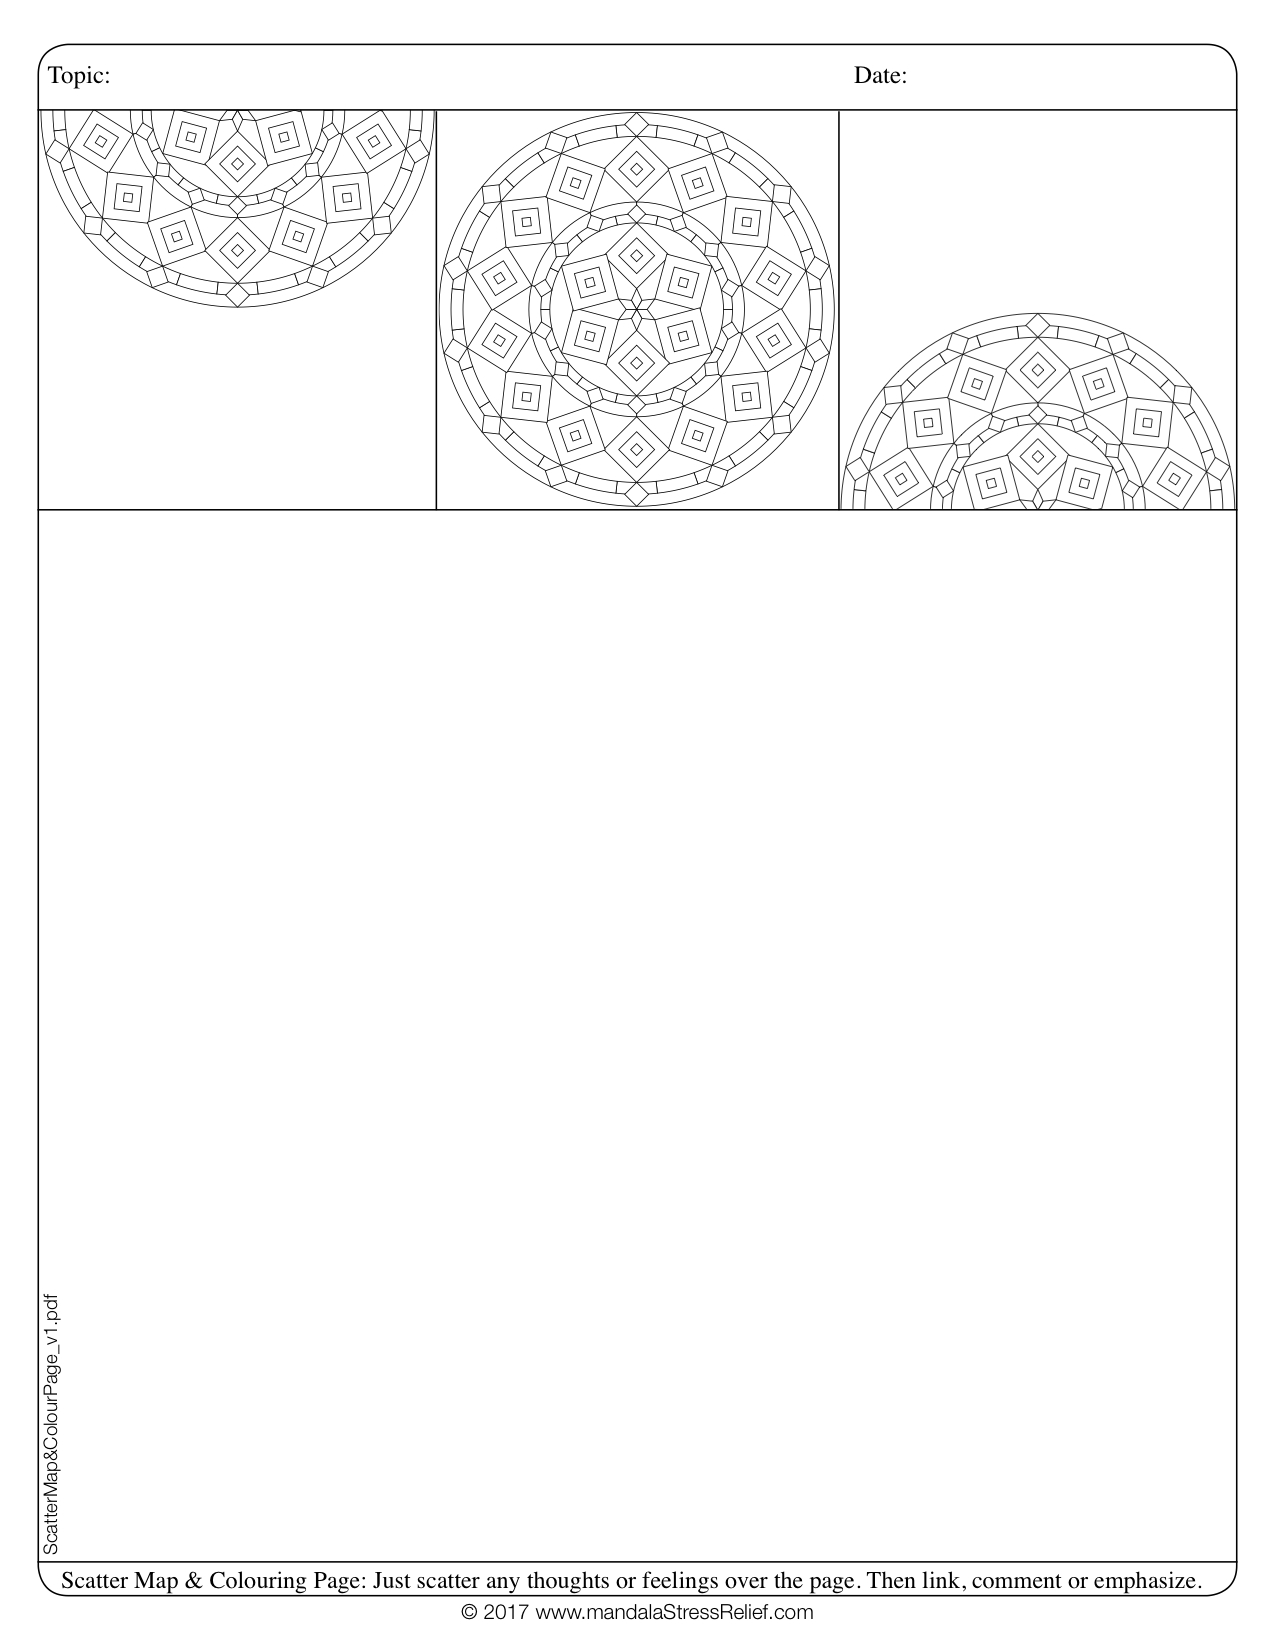 Download  this free Scatter Map & Colouring Template Page.